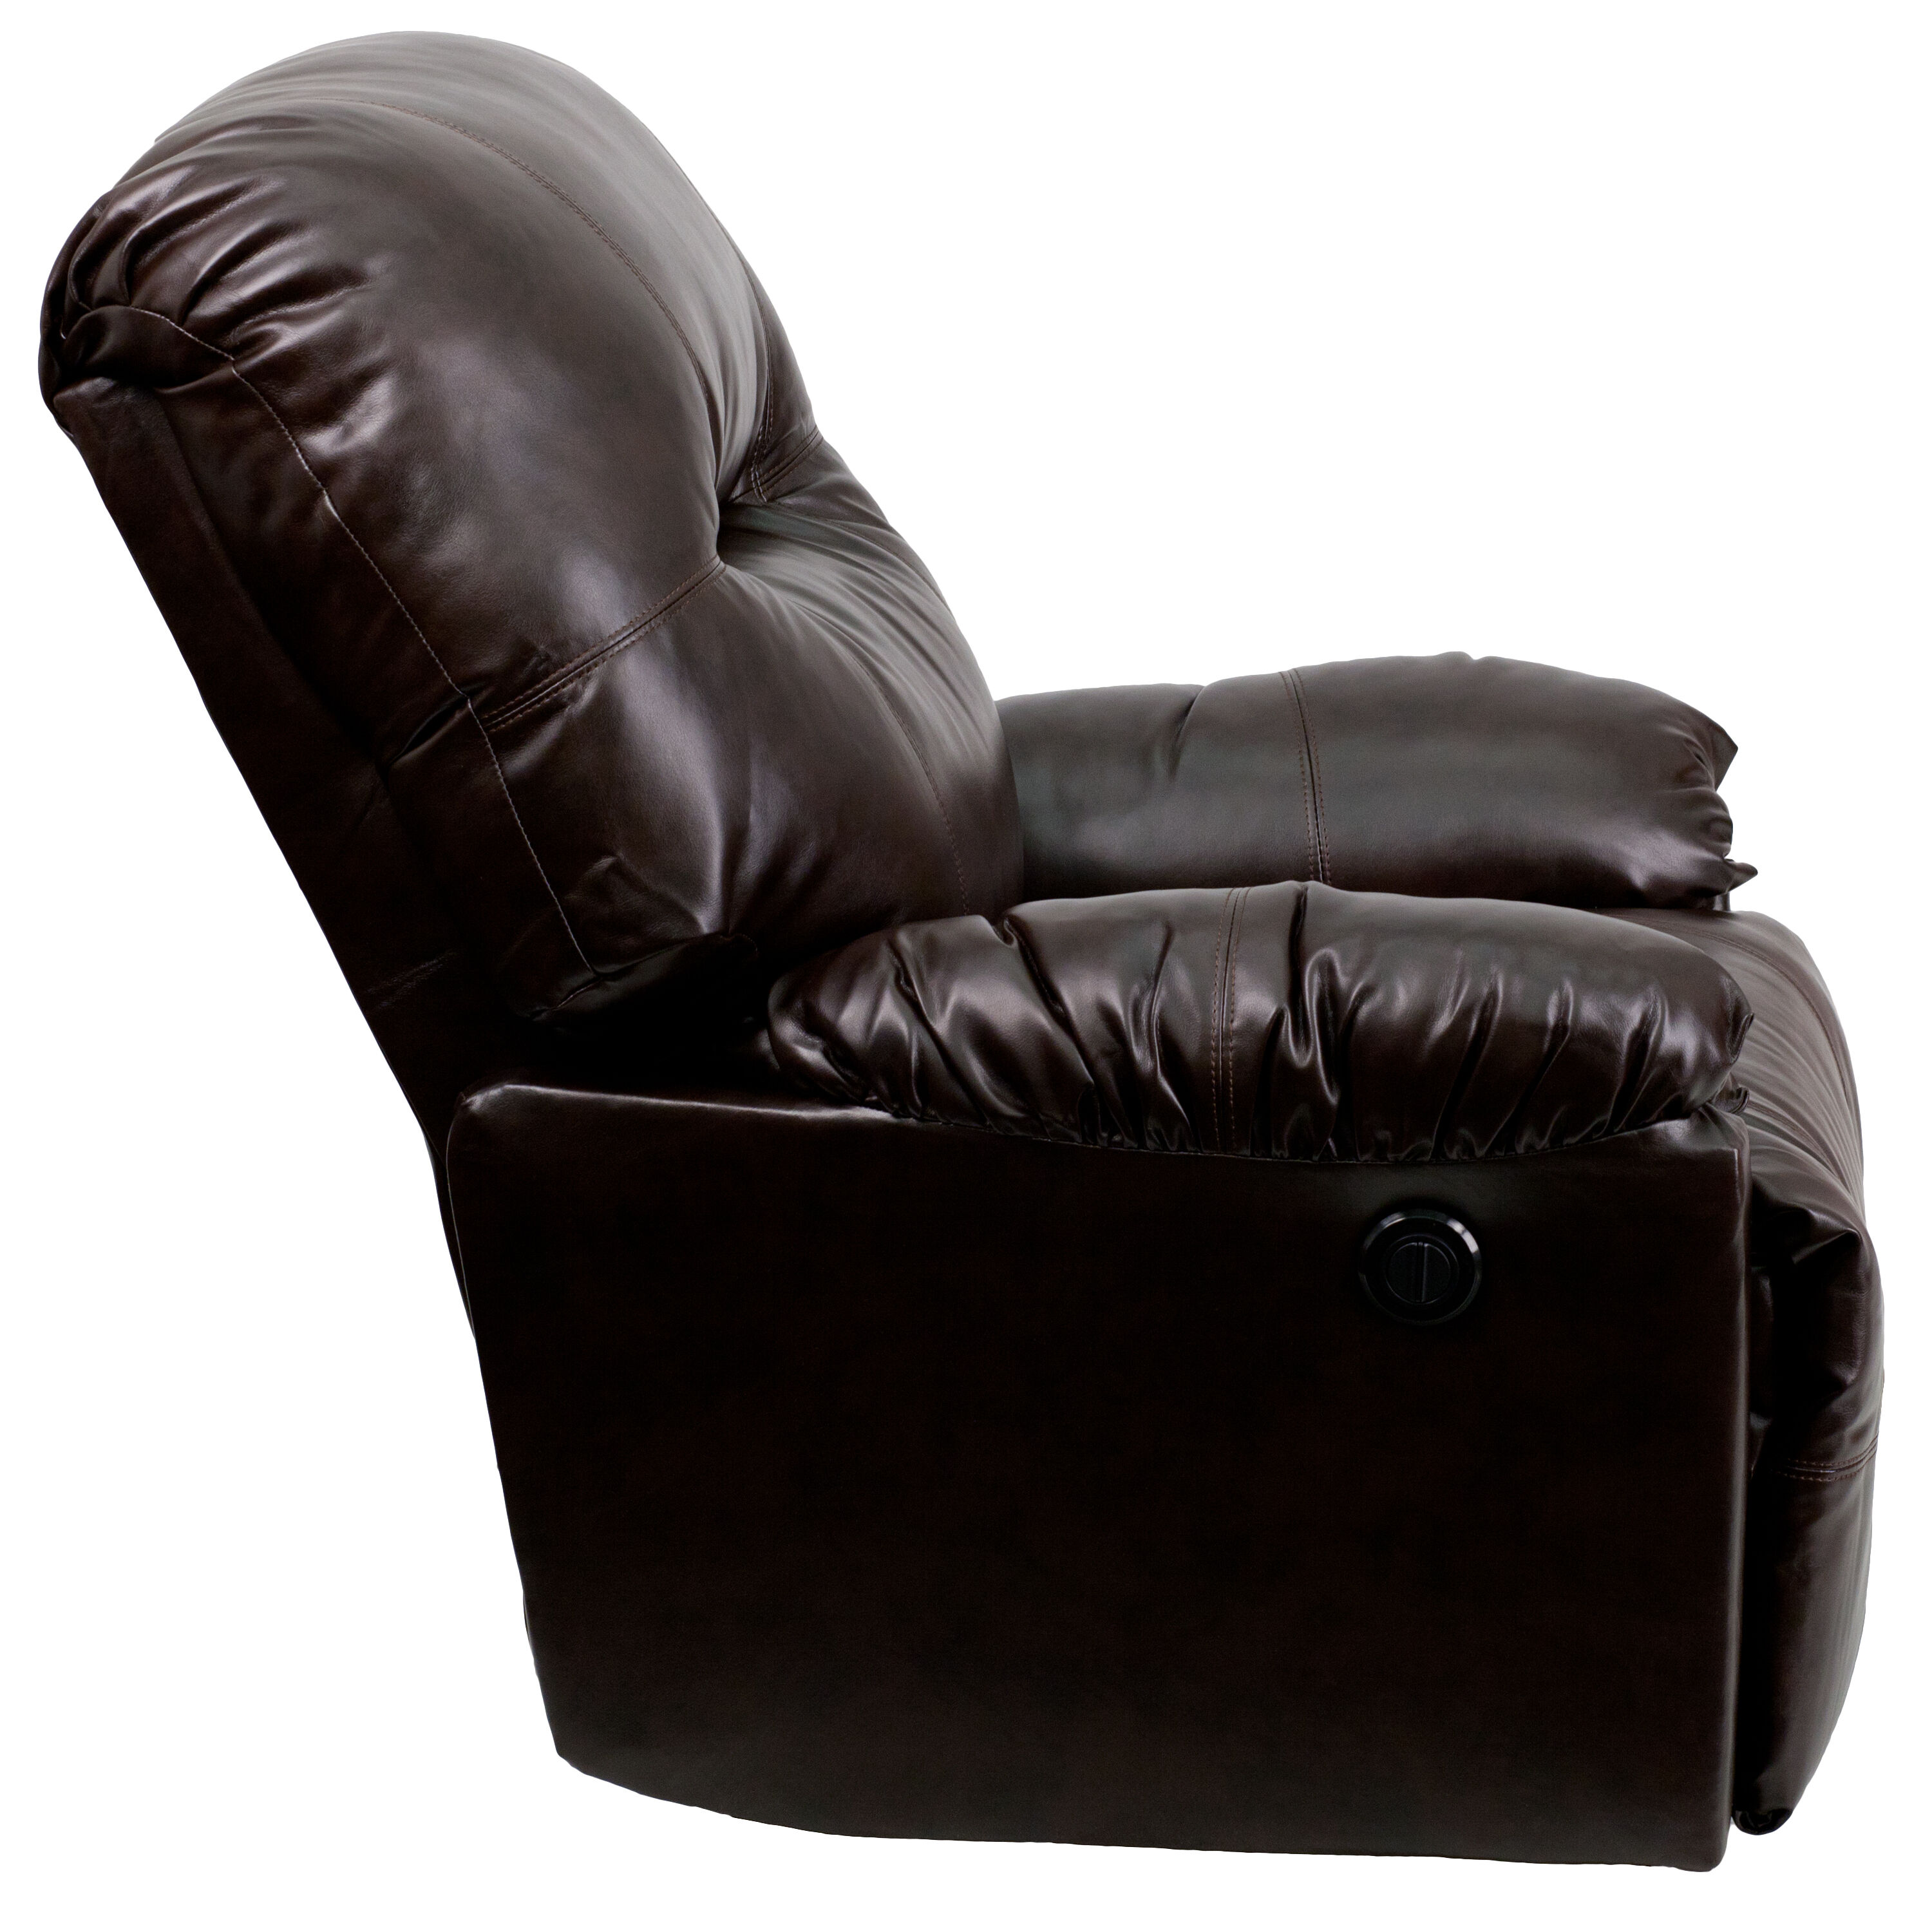 push button recliner chairs glider chair cover brown leather power am cp9350 9075 gg bizchair